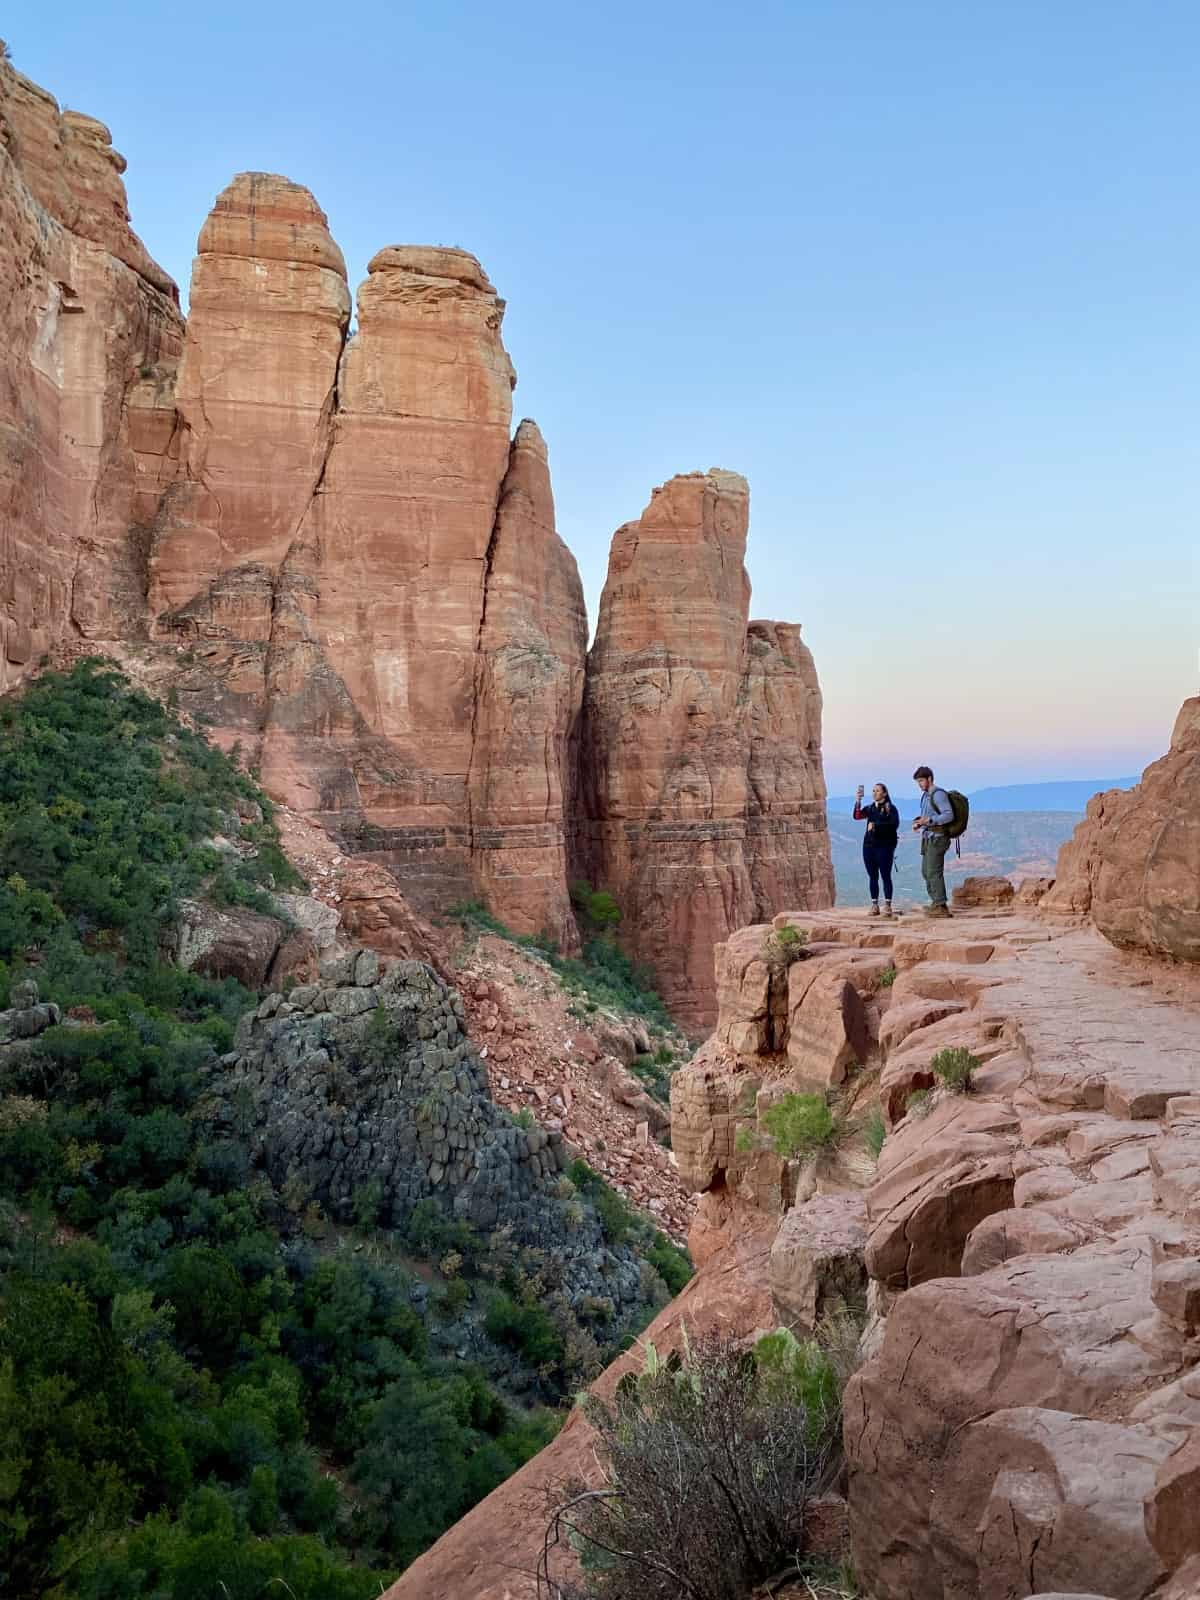 What It's Like Hiking Sedona's Cathedral Rock at Sunrise   This iconic & challenging hike is stunning any time of day, but sunrise is a particularly magical experience. How to determine if Cathedral Rock Sedona is the right hike for you (heights, steepness, etc), & tips for making the most of it. #cathedralrock #sedona #hiking #sunrisehike